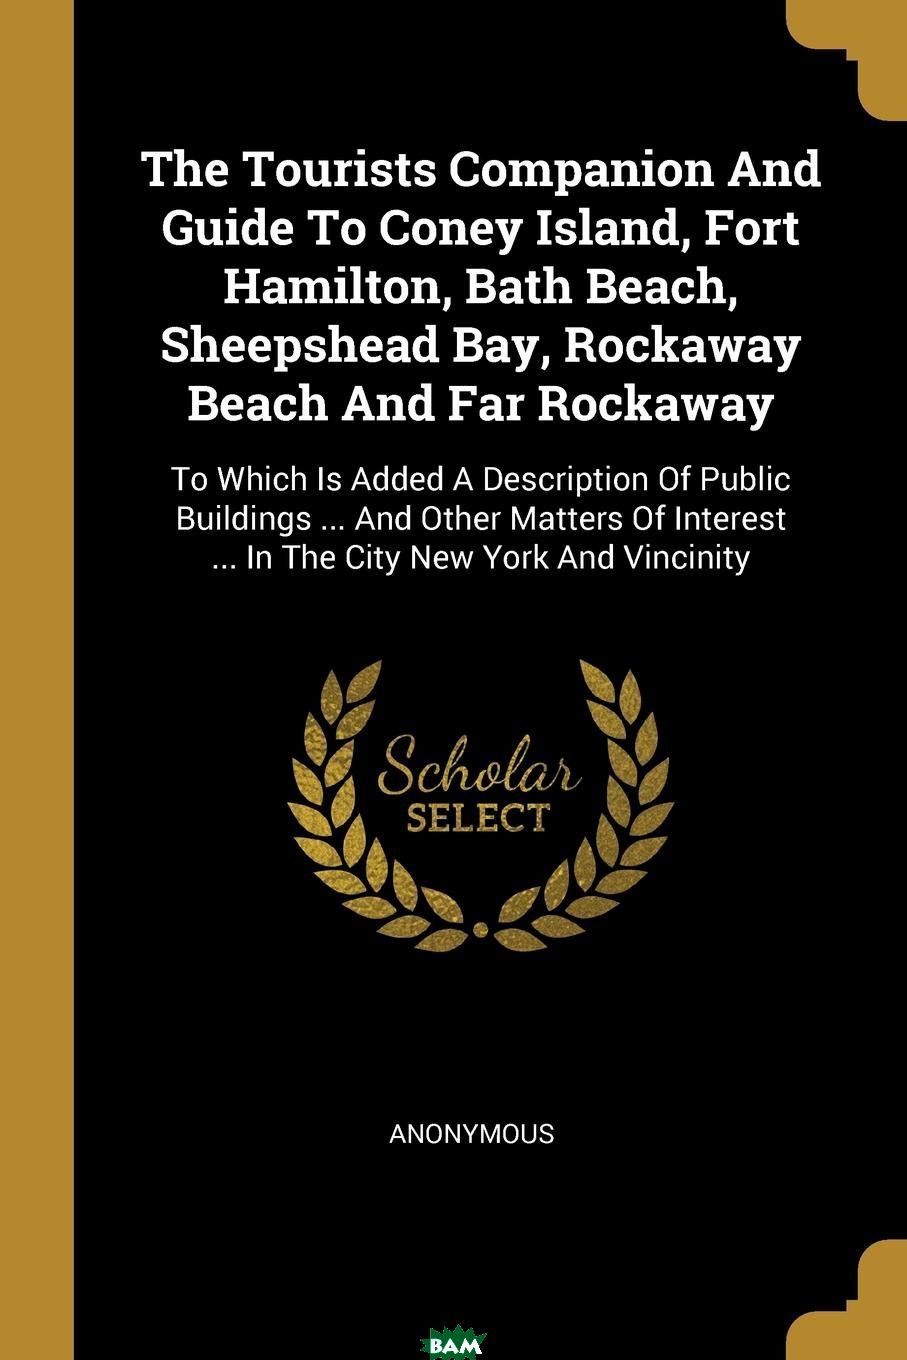 Купить The Tourists Companion And Guide To Coney Island, Fort Hamilton, Bath Beach, Sheepshead Bay, Rockaway Beach And Far Rockaway. To Which Is Added A Description Of Public Buildings ... And Other Matters, M. l`abbe Trochon, 9781011602230